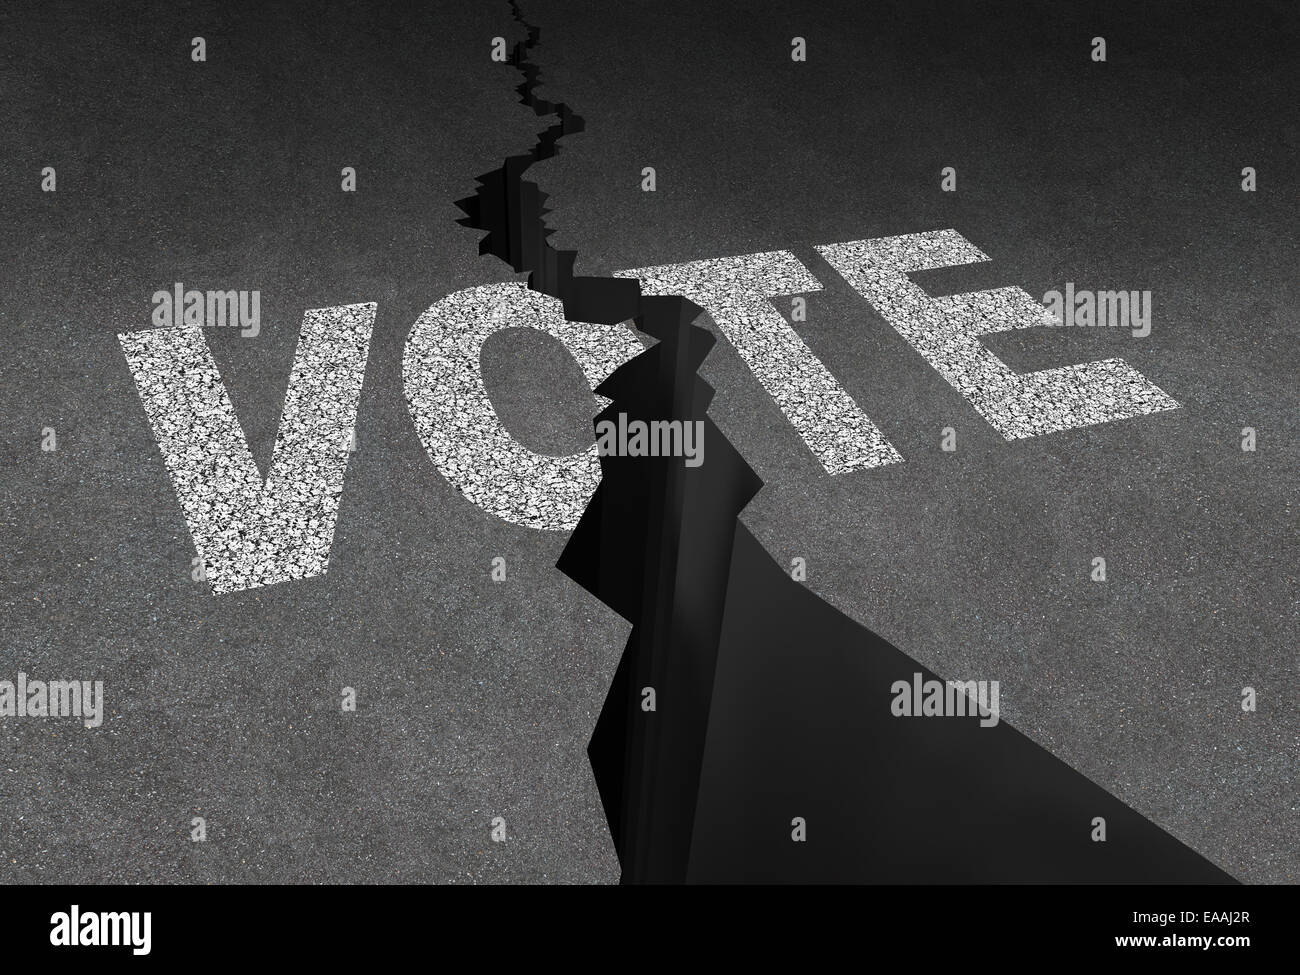 Divided vote concept and split opinion symbol as cracked outdoor asphalt floor with road painted text as a democratic - Stock Image